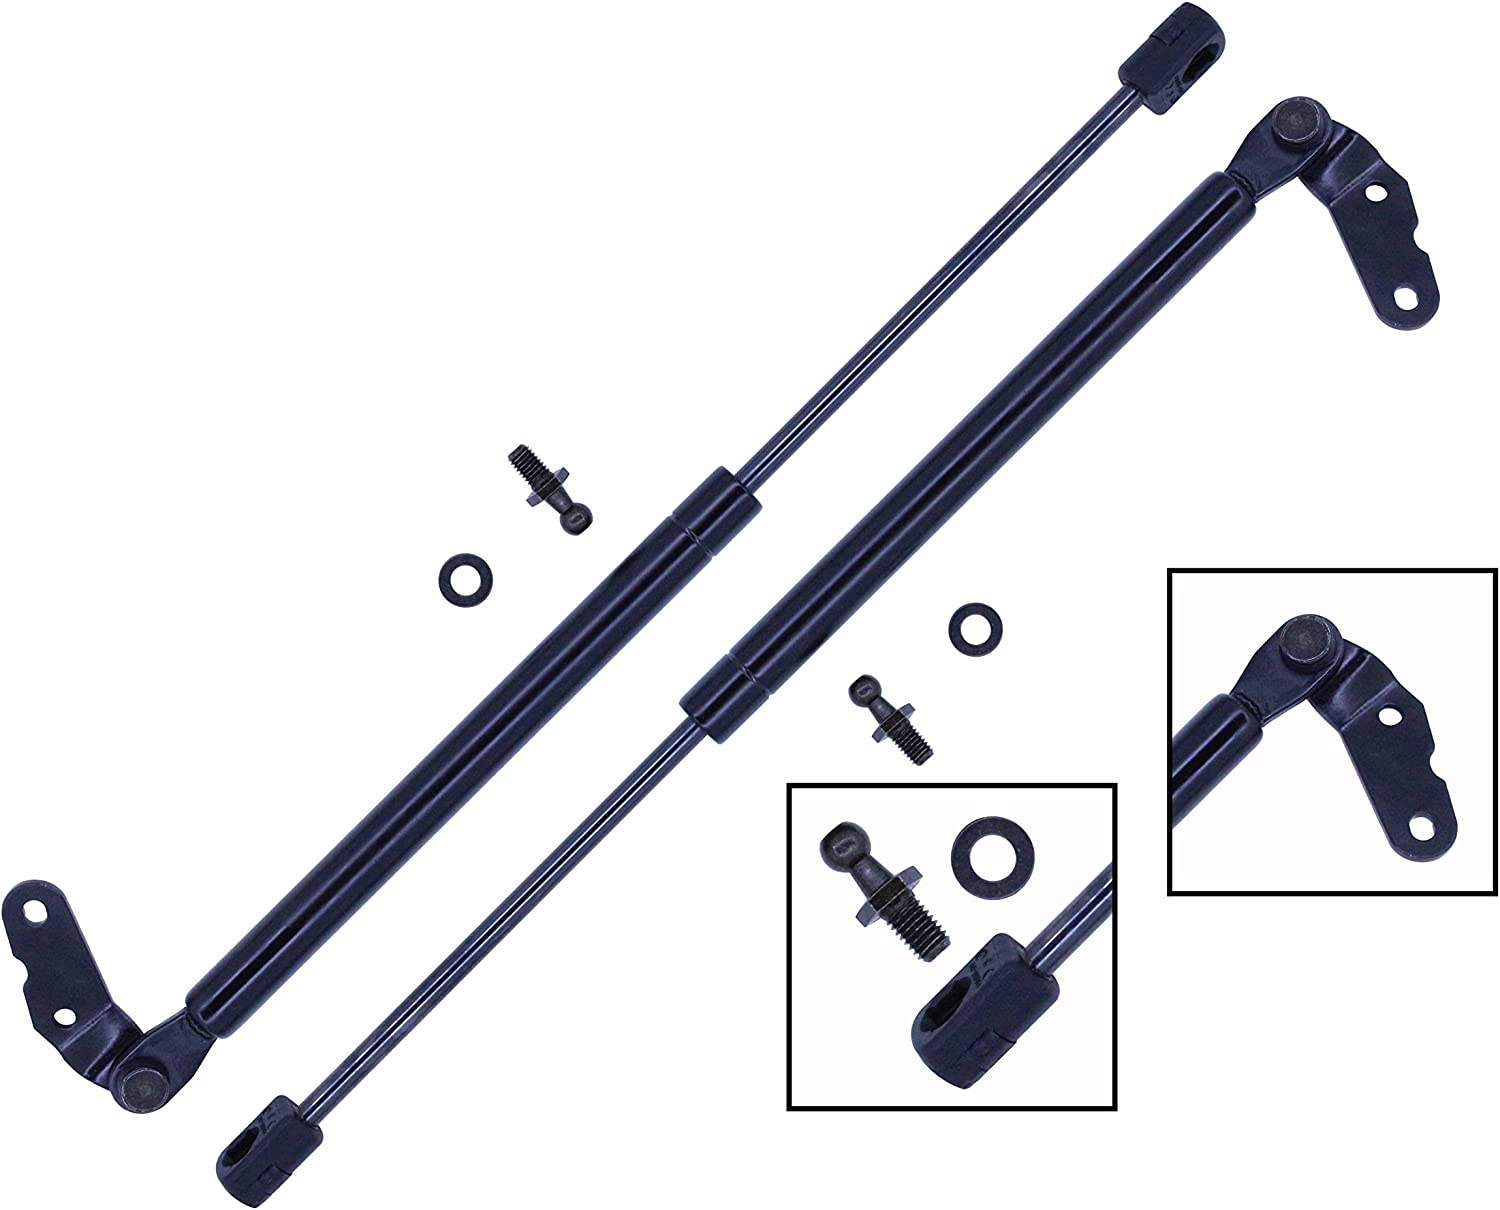 2 New Hatch Gas Lift Supports Struts Rod Arm Shocks Fit Toyota Celica 2000-2006